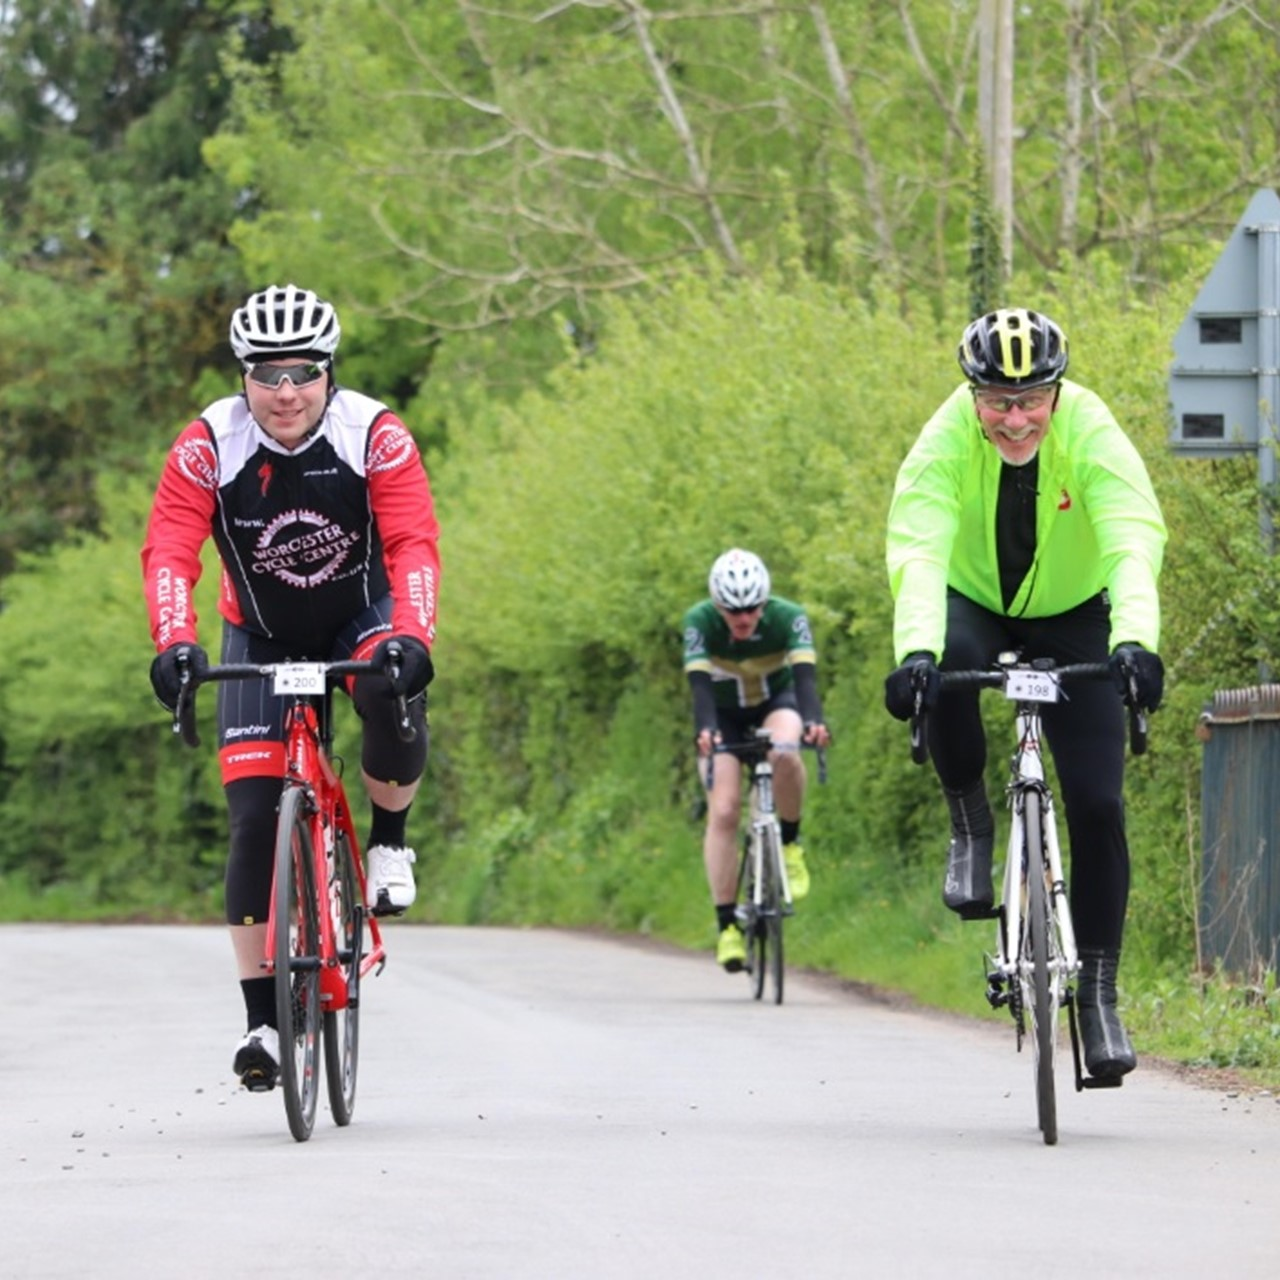 Wye Valley Brewery Cycling Sportive